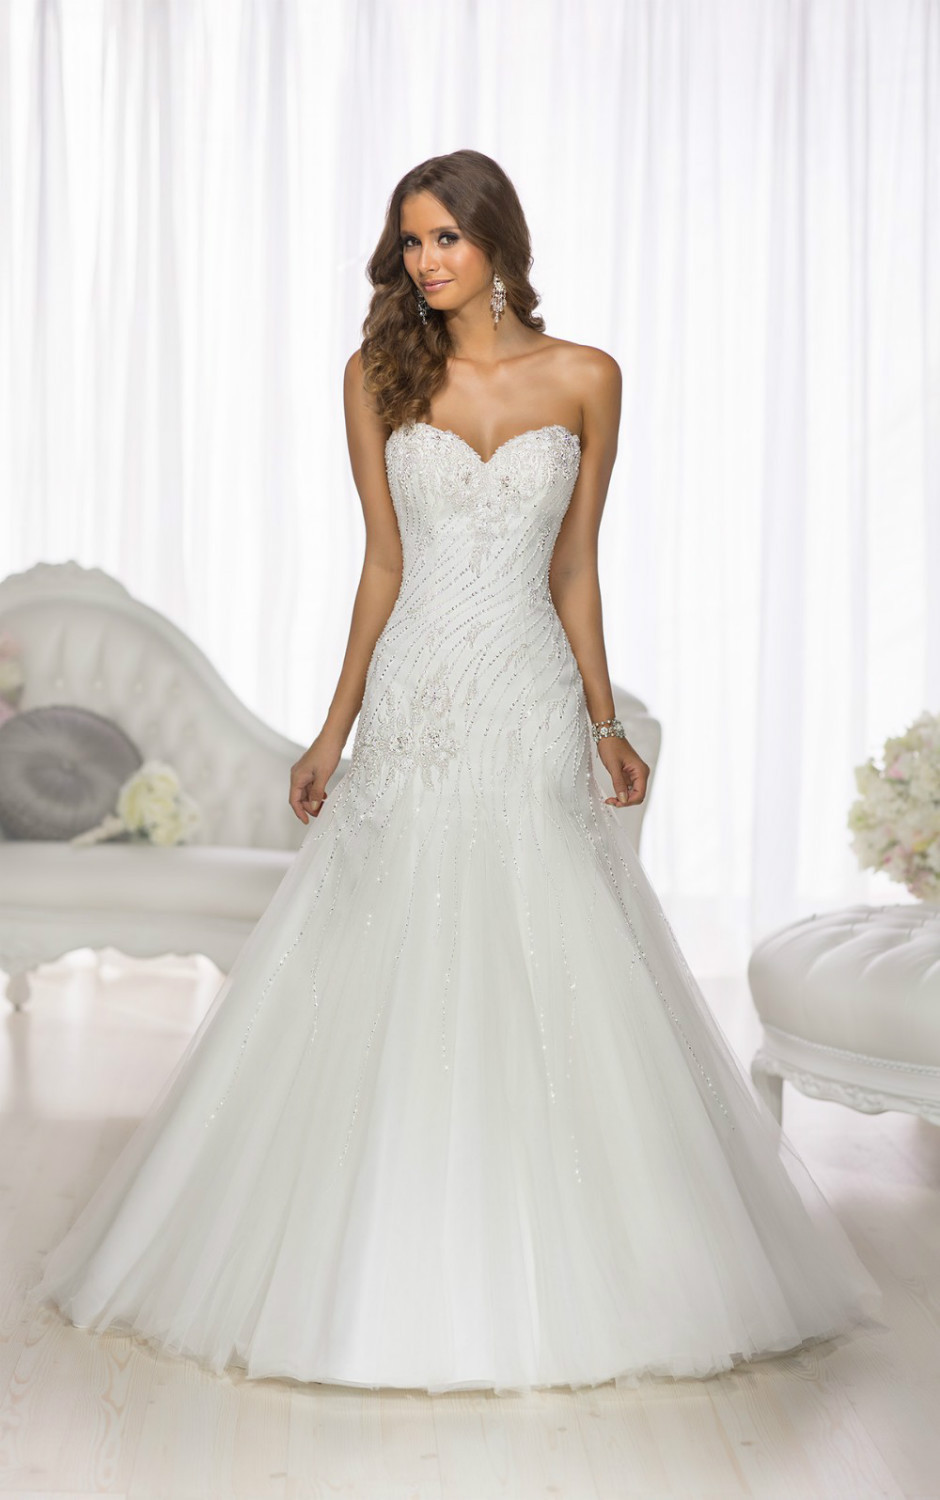 Wedding Dresses Modified A Line : This modified a line designer wedding gown from essense of features